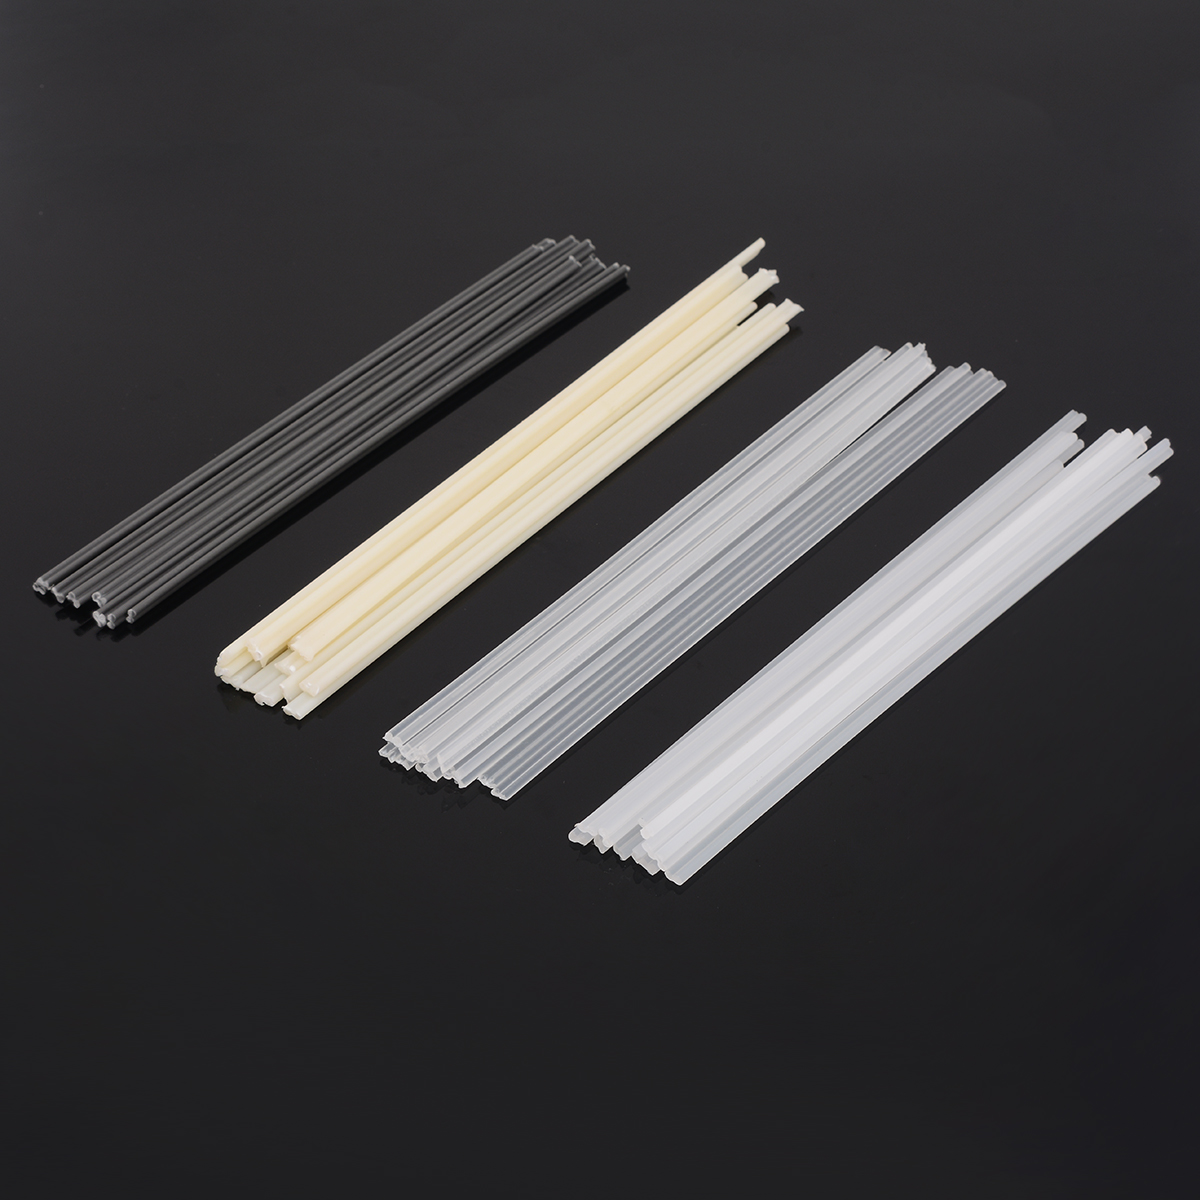 50Pcs Plastic Welding Rods ABS/PP/PVC/PE Welding Sticks 200x5x2mm For Plastic Welder For Soldering